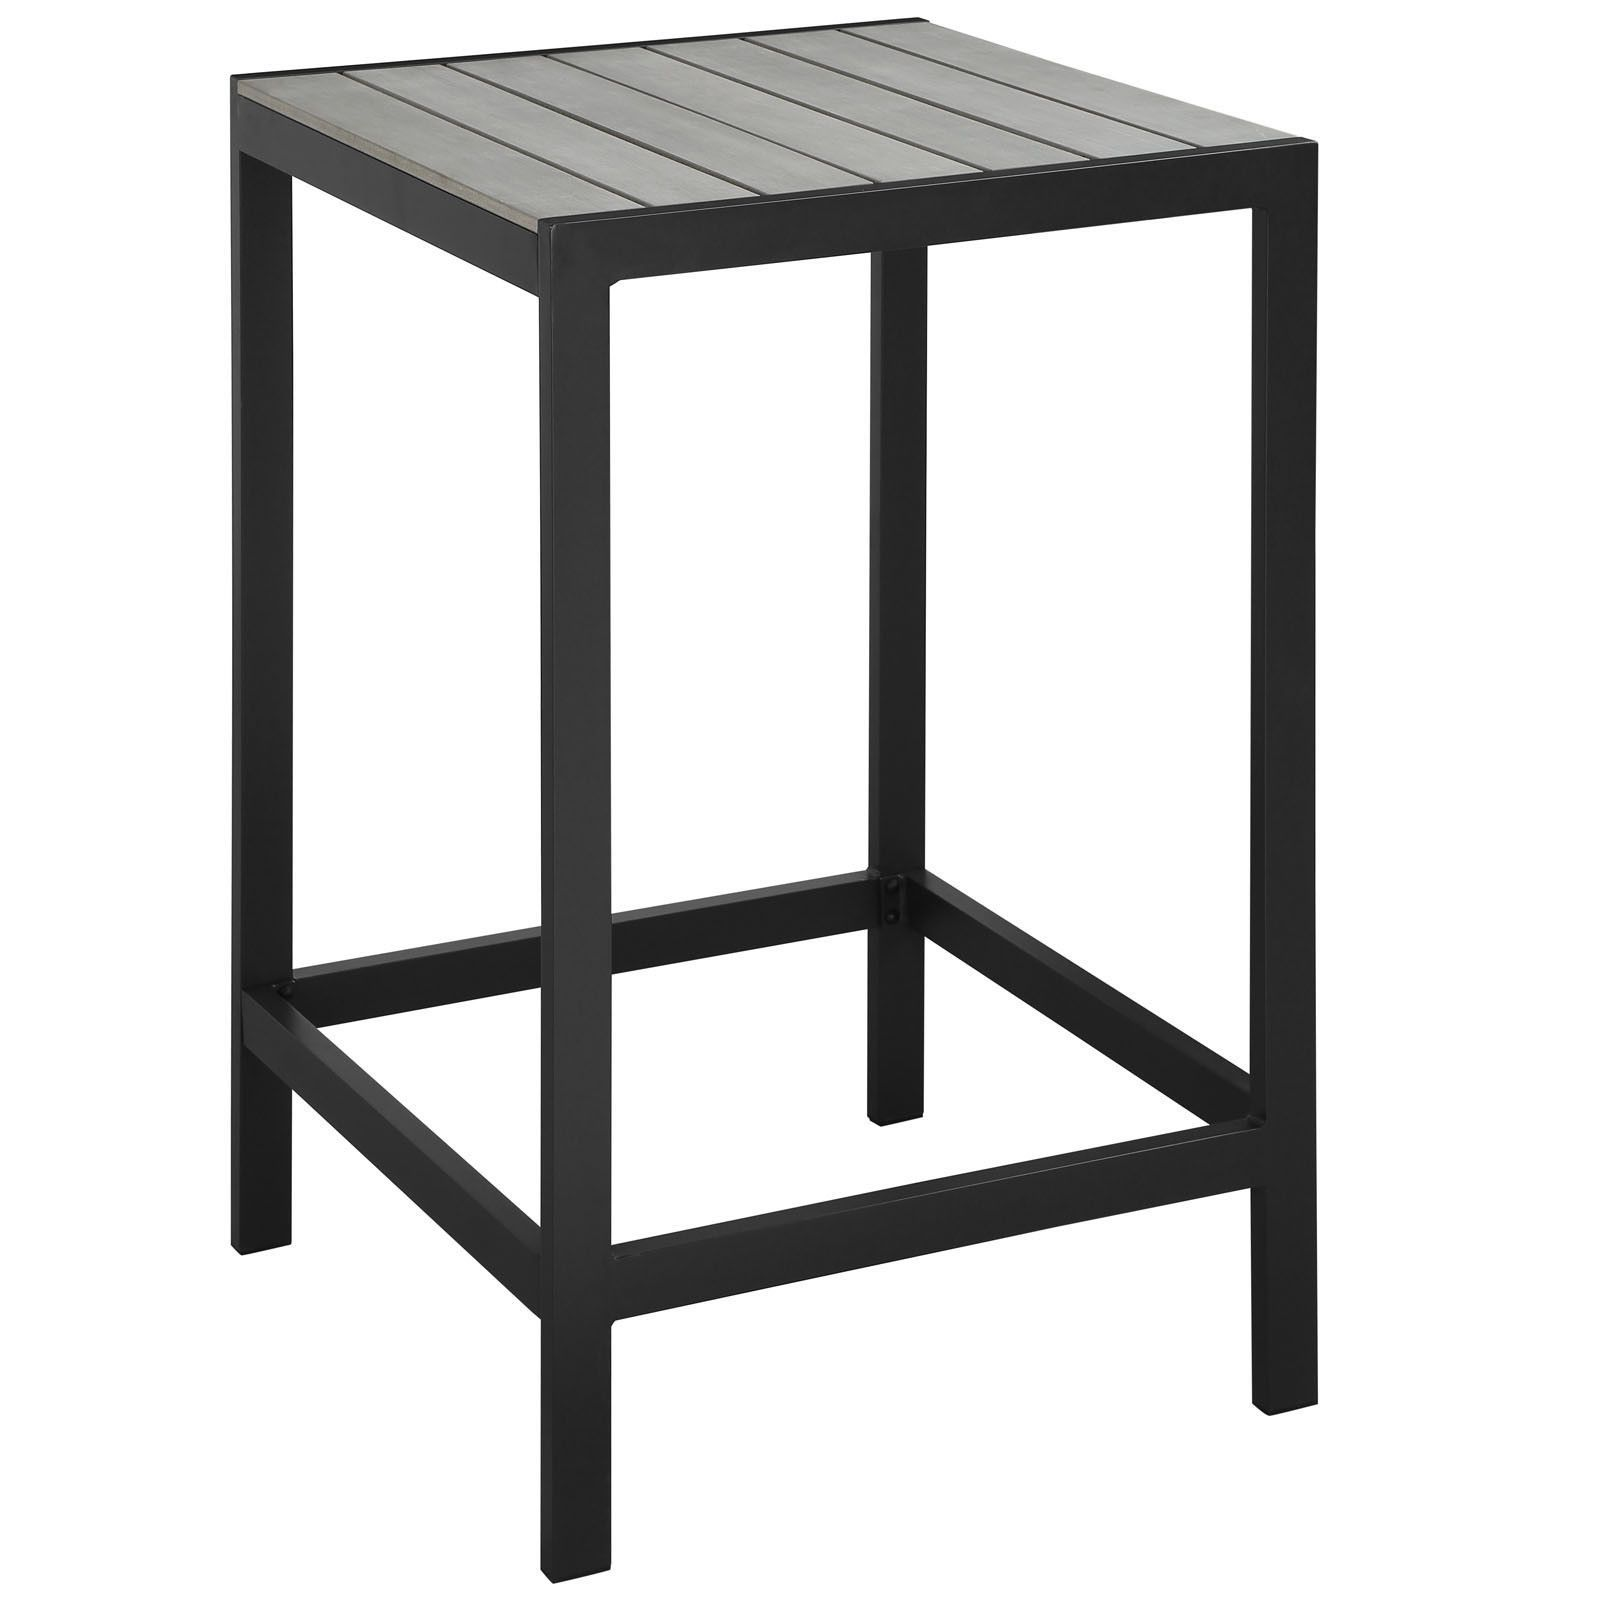 Modway Furniture Maine Outdoor Patio Bar Table